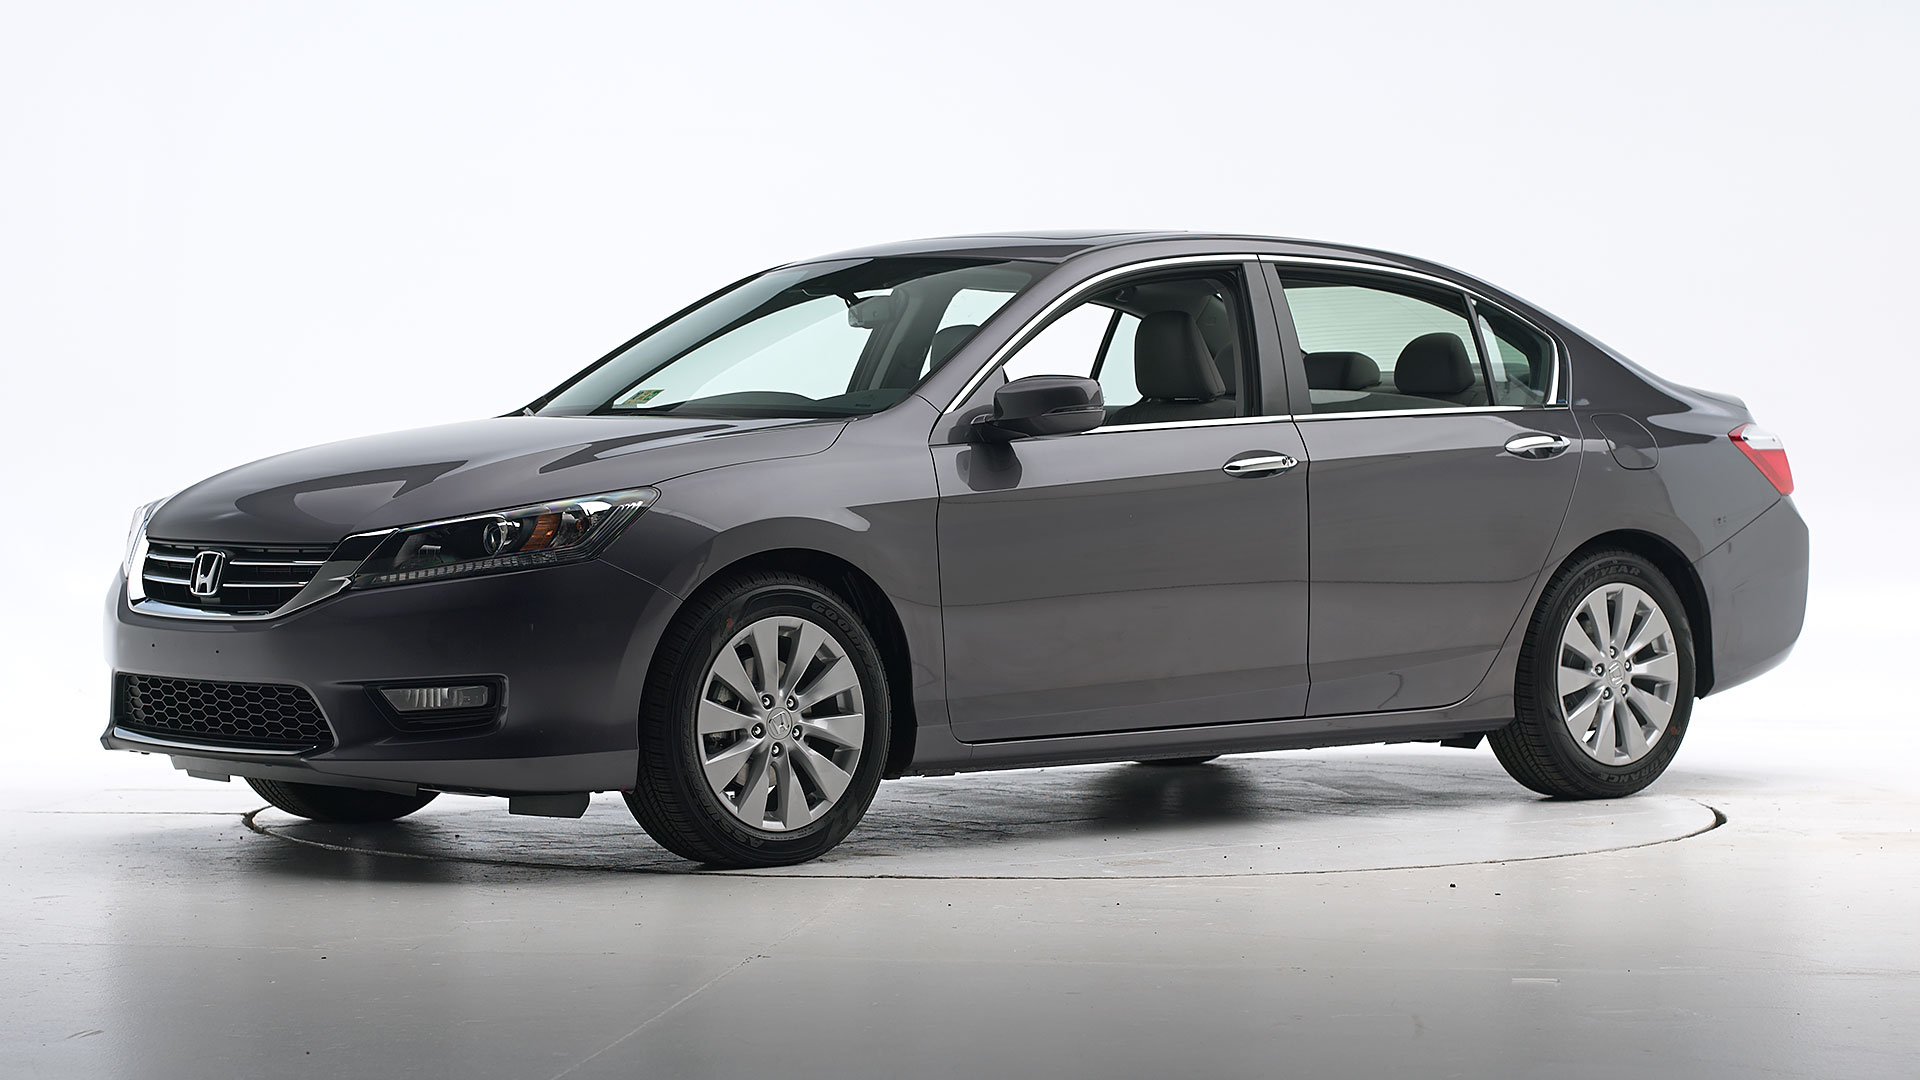 2015 Honda Accord 4-door sedan